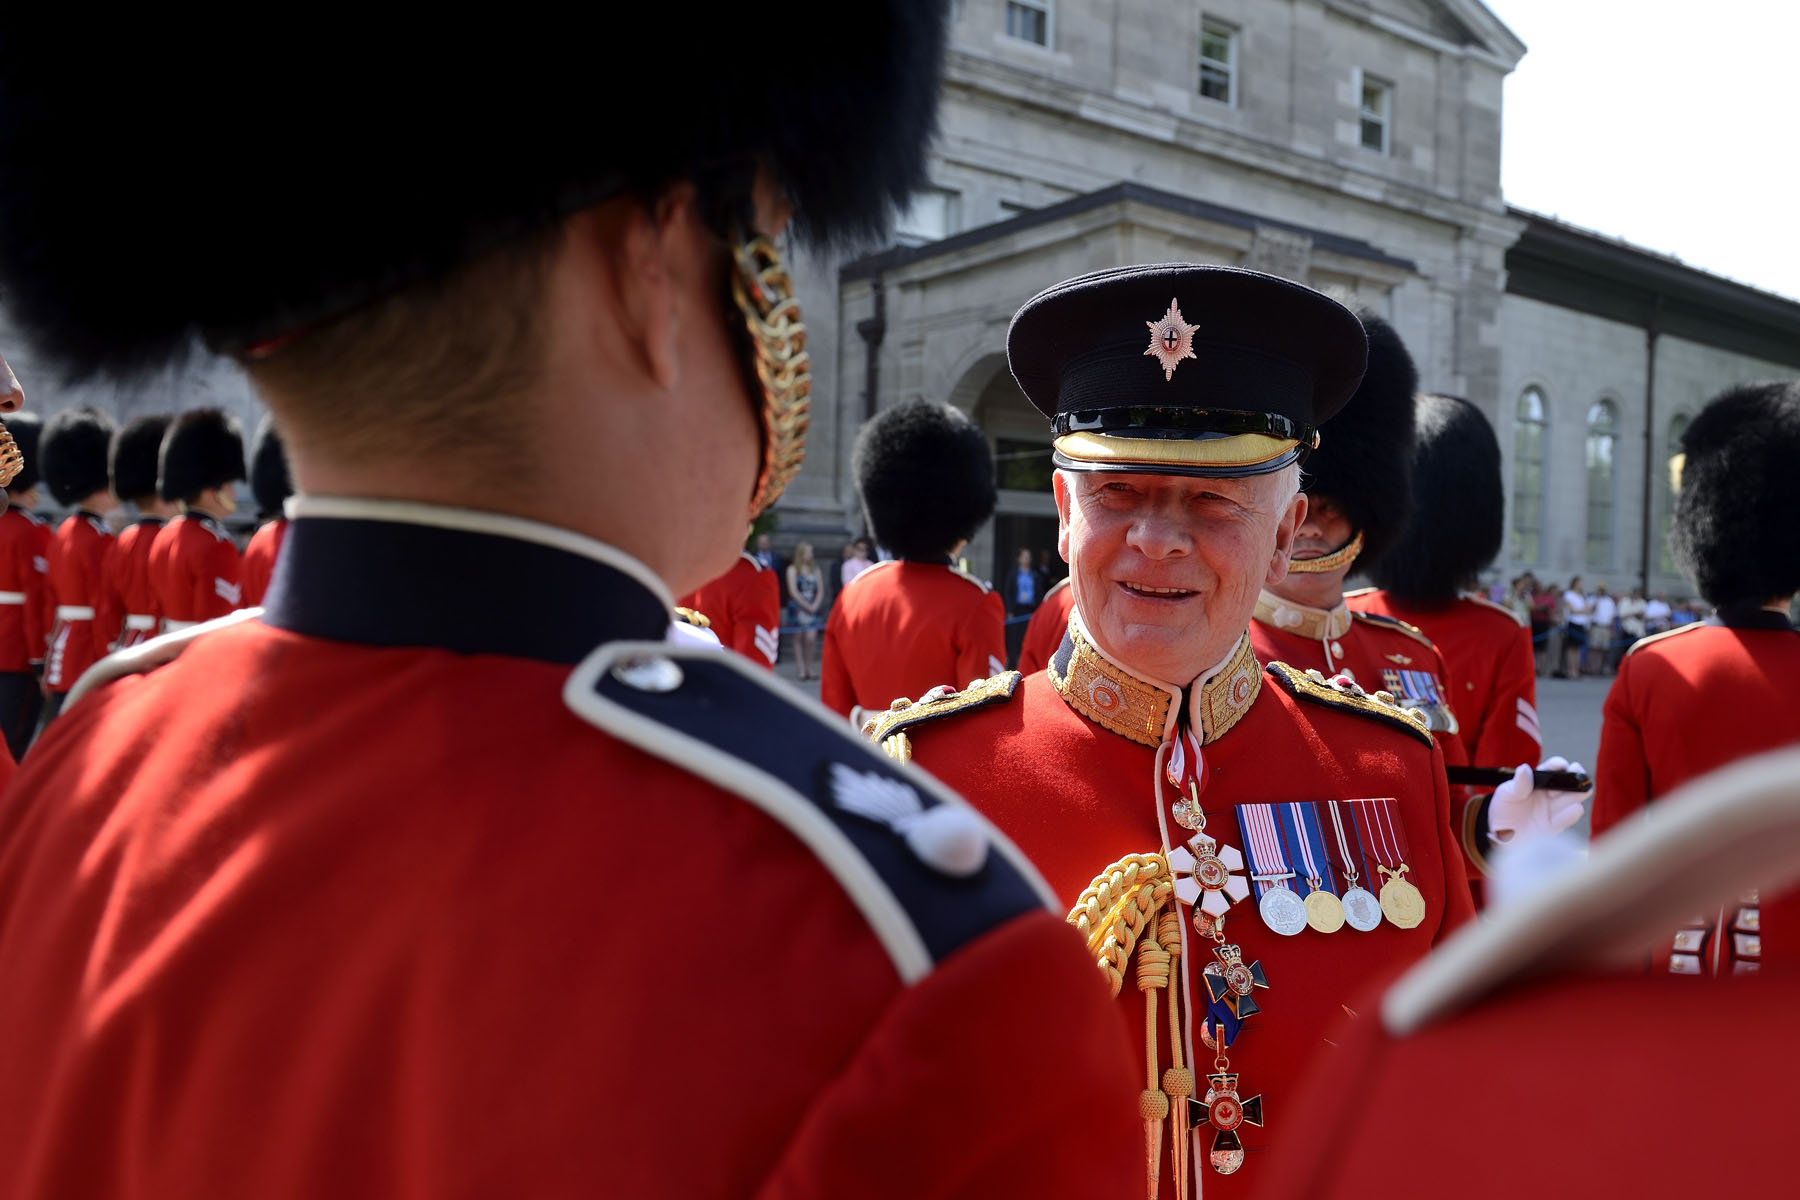 During the inspection, His Excellency said a few words to some members of the Ceremonial Guard.